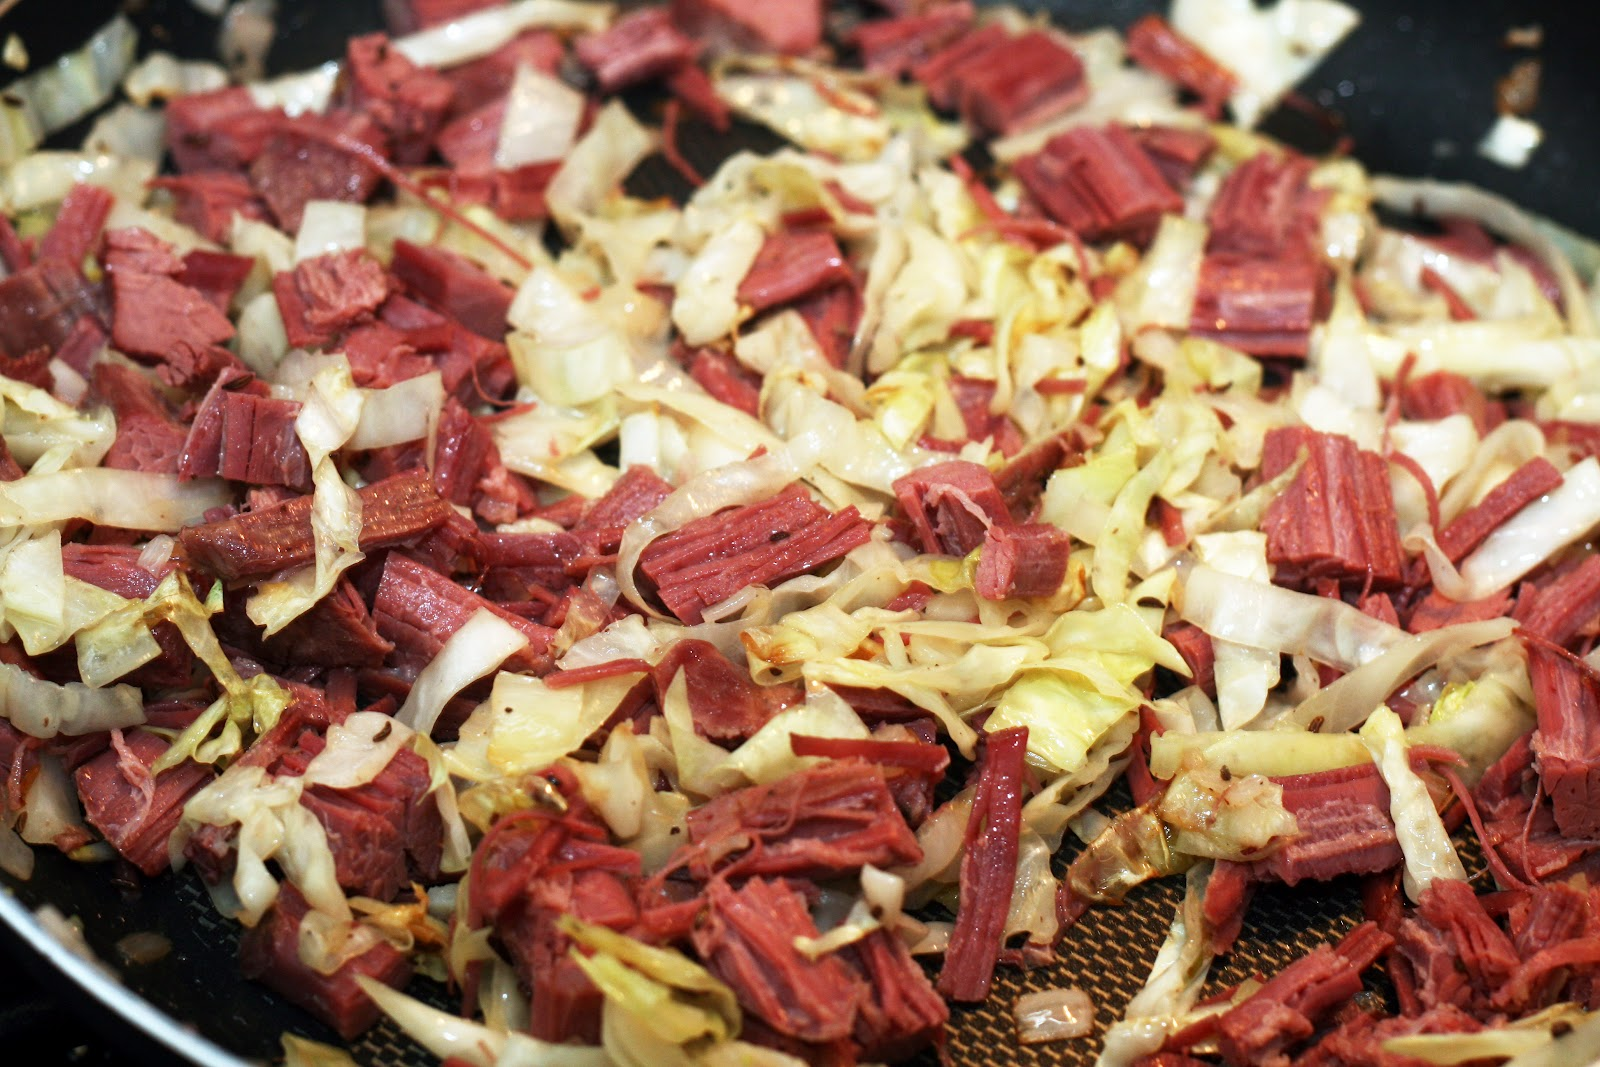 Coconut lime recipes by rachel rappaport corned beef and melt the butter in a large skillet saute the cabbage shallot and caraway seeds until the cabbages softens add the corned beef and cook for 1 minute ccuart Gallery